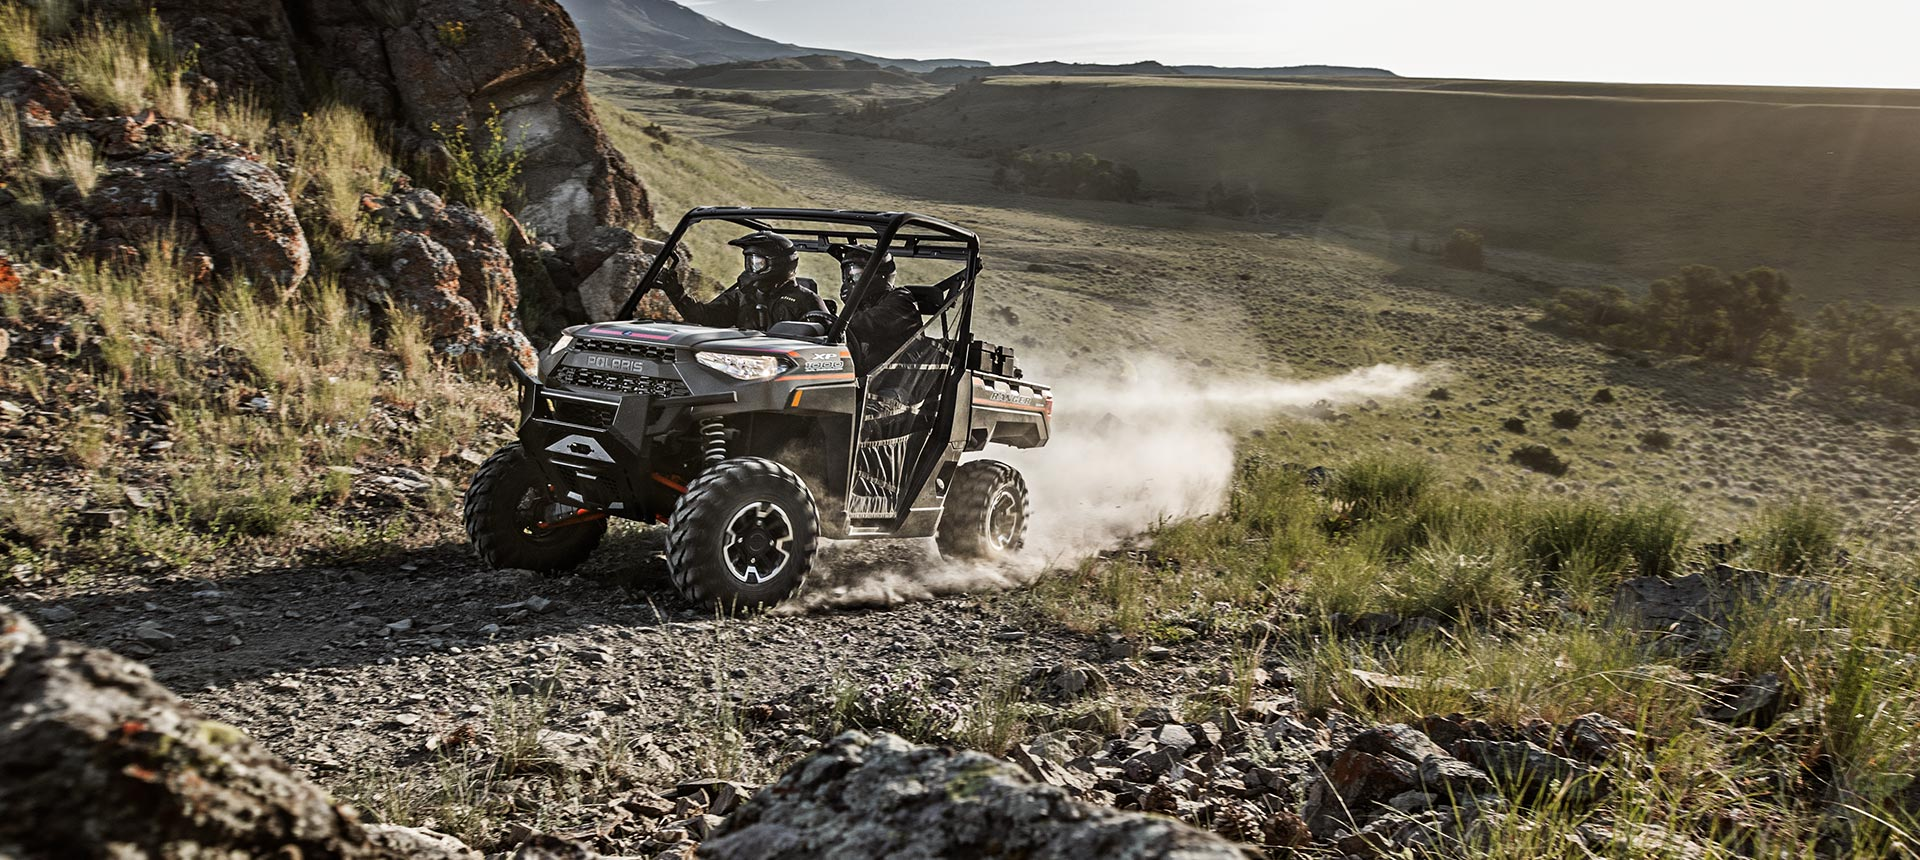 2019 Polaris Ranger XP 1000 EPS in Conroe, Texas - Photo 2